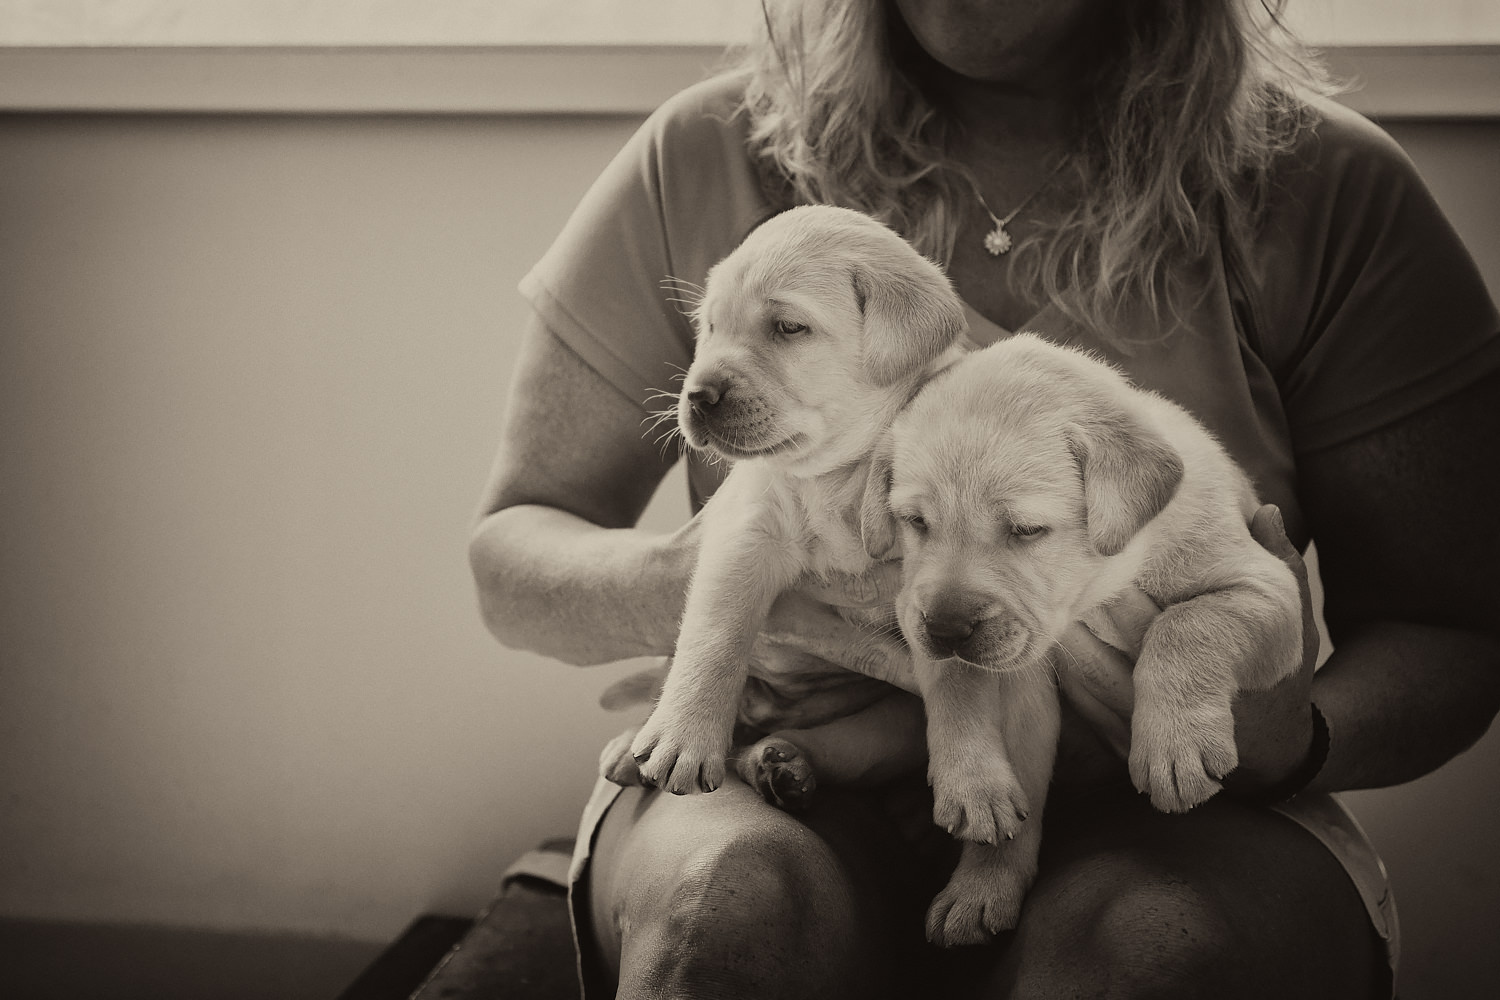 Two Guiding Eyes pups sit on the lap of a volunteer in the socialization room.